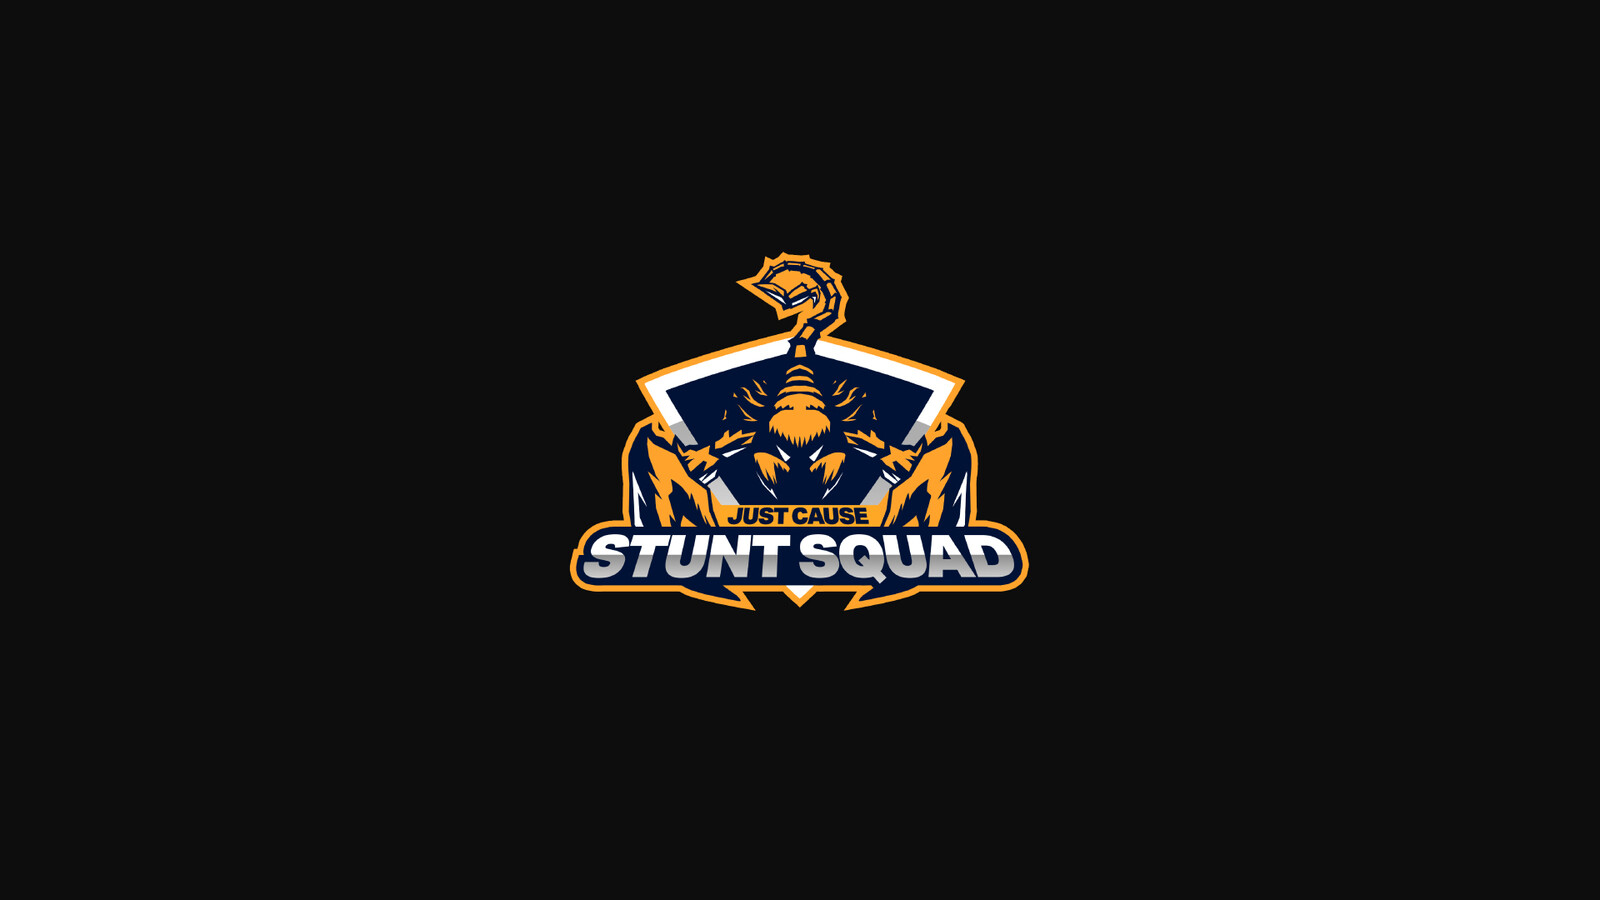 Just Cause 4 Stunt Squad Logo